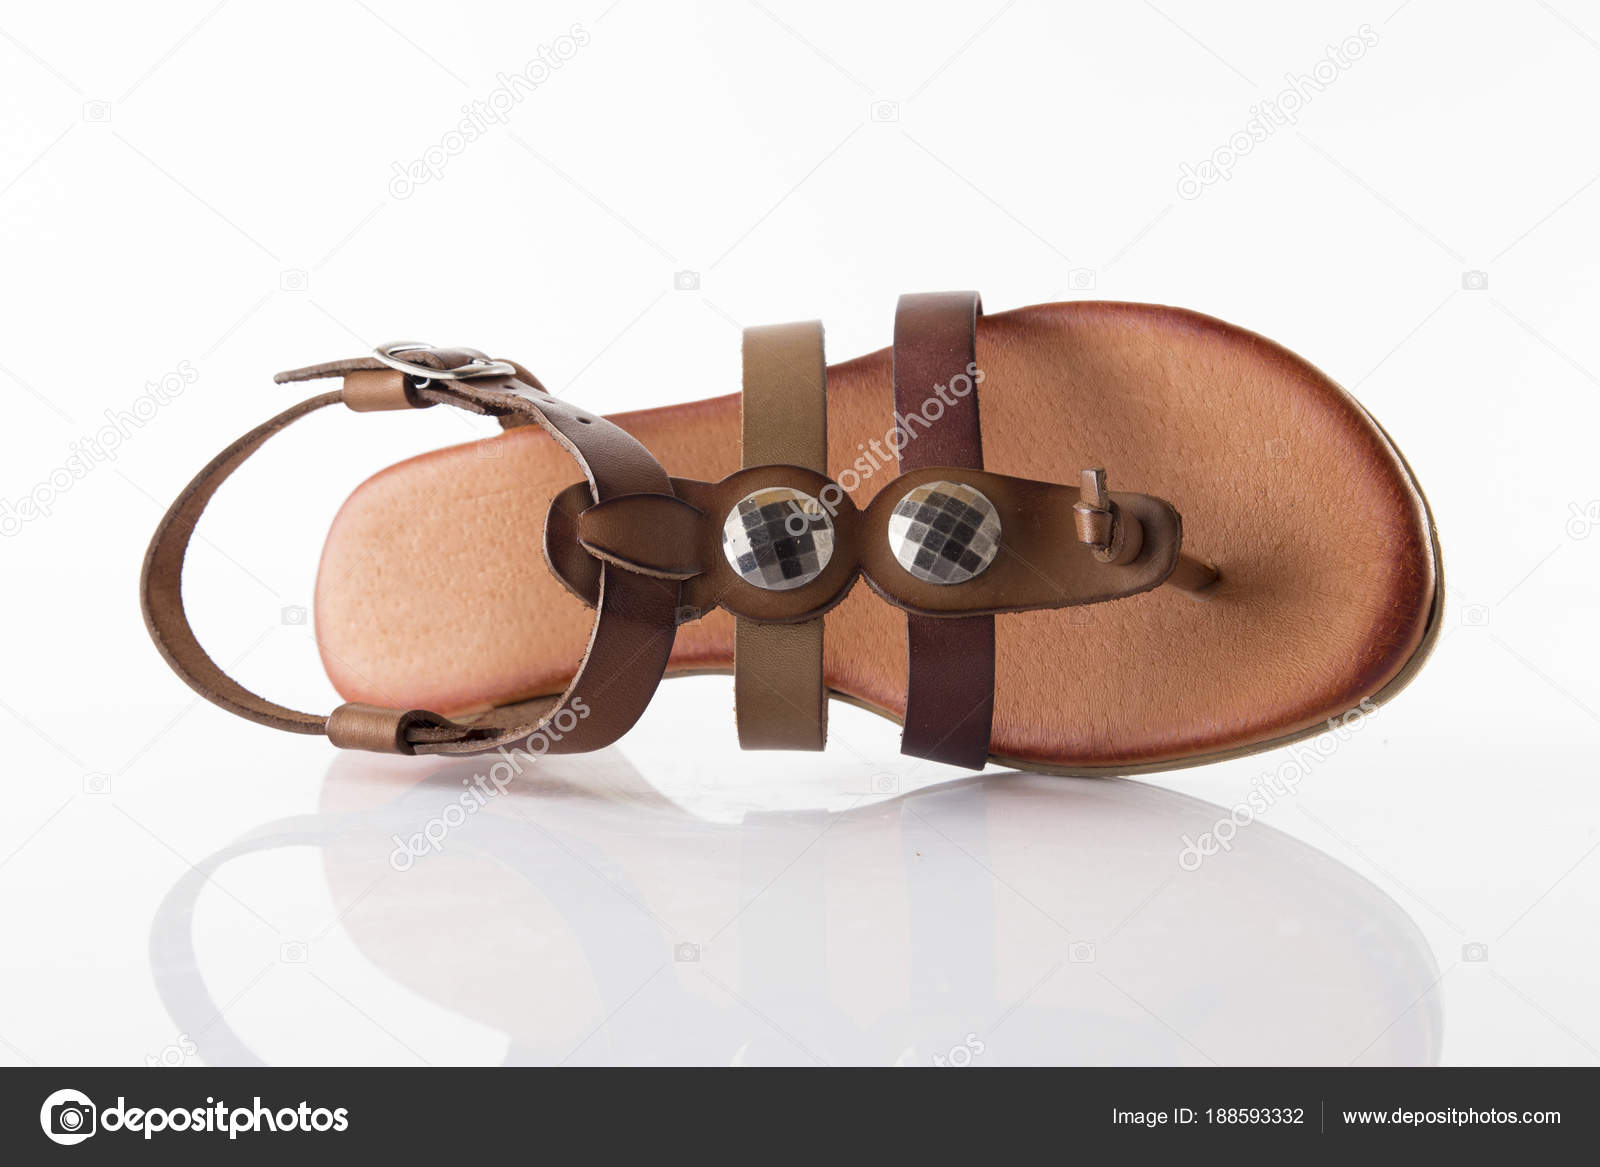 c25b6f4ac98c6 Female Brown Leather Sandal White Background Isolated Product Comfortable  Footwear — Stock Photo